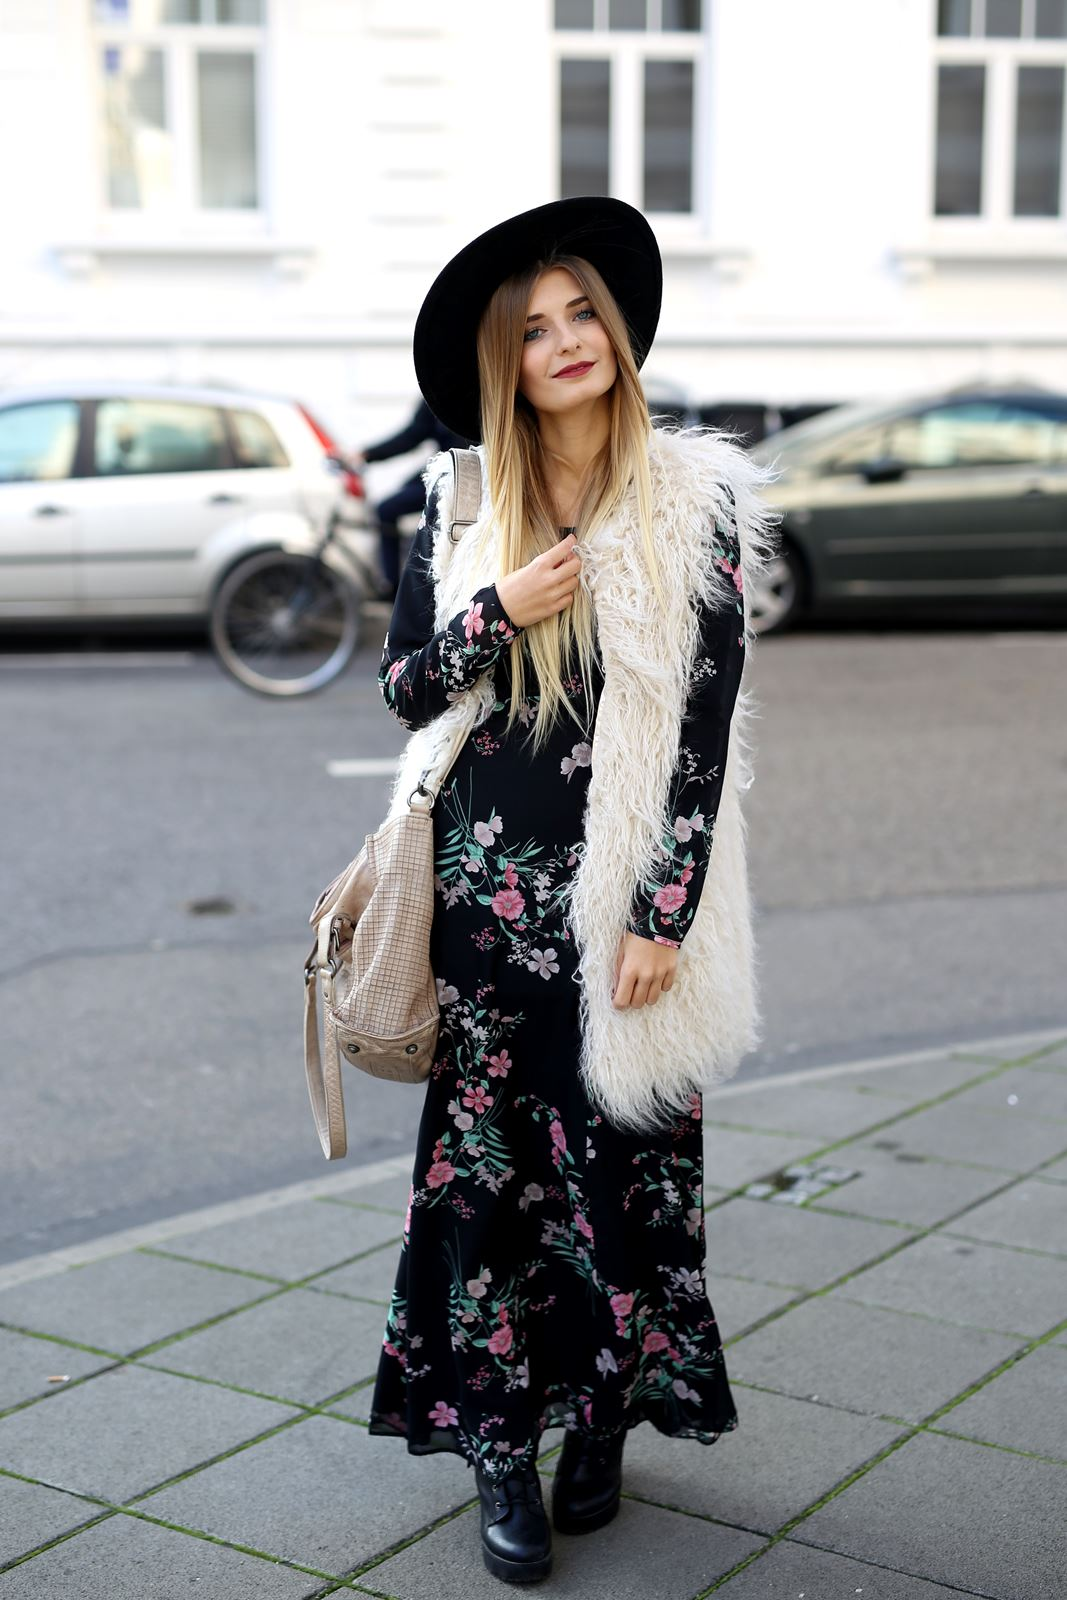 modeblog-fashion-blog-outfit-herbst-fake-fur-maxi-kleid-2